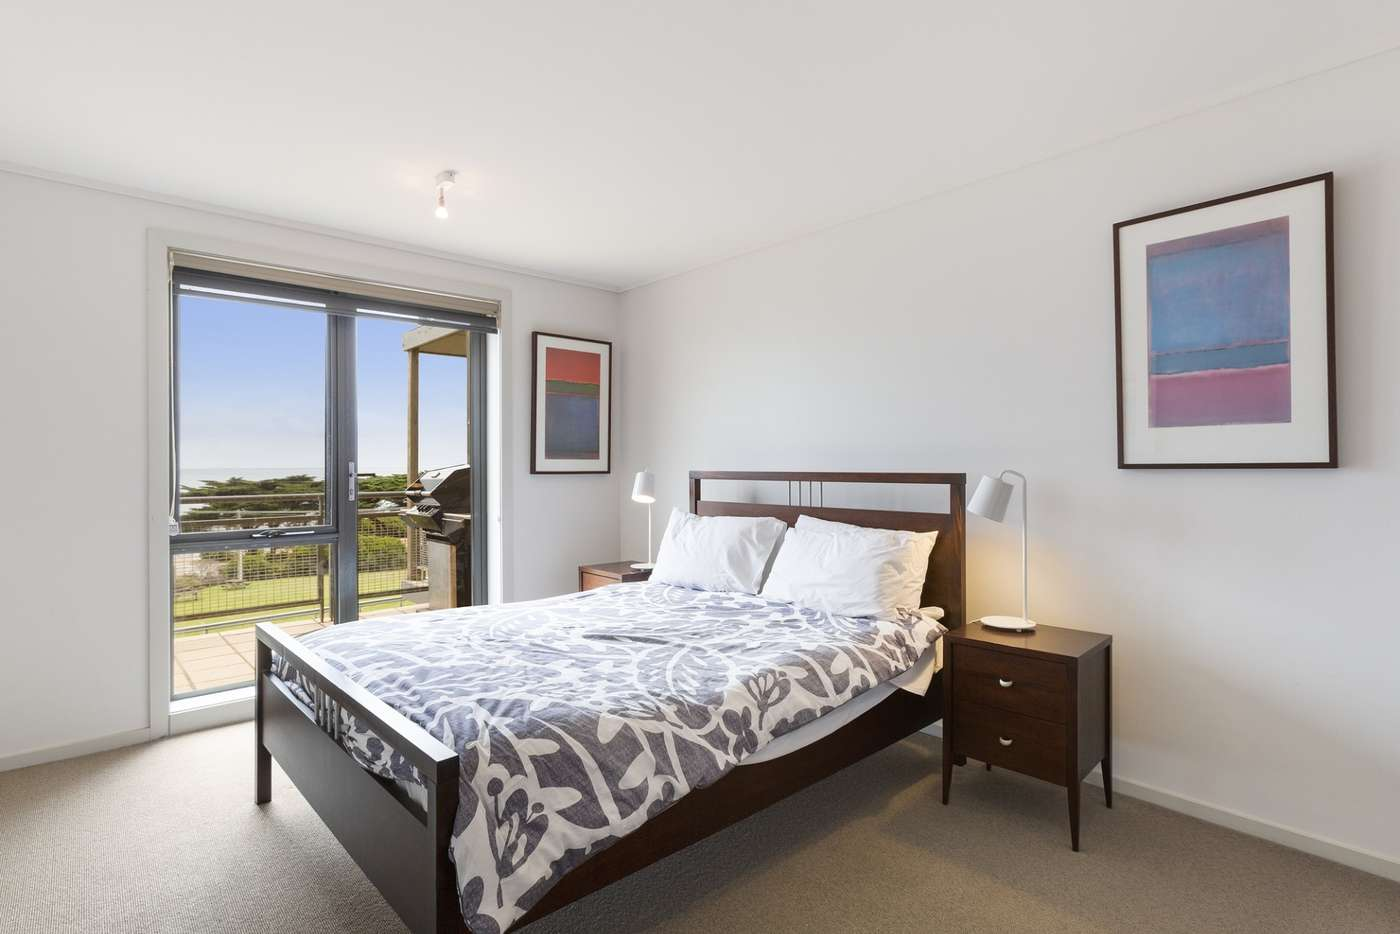 Sixth view of Homely house listing, 18/2-10 Ocean Road South Road, Lorne VIC 3232